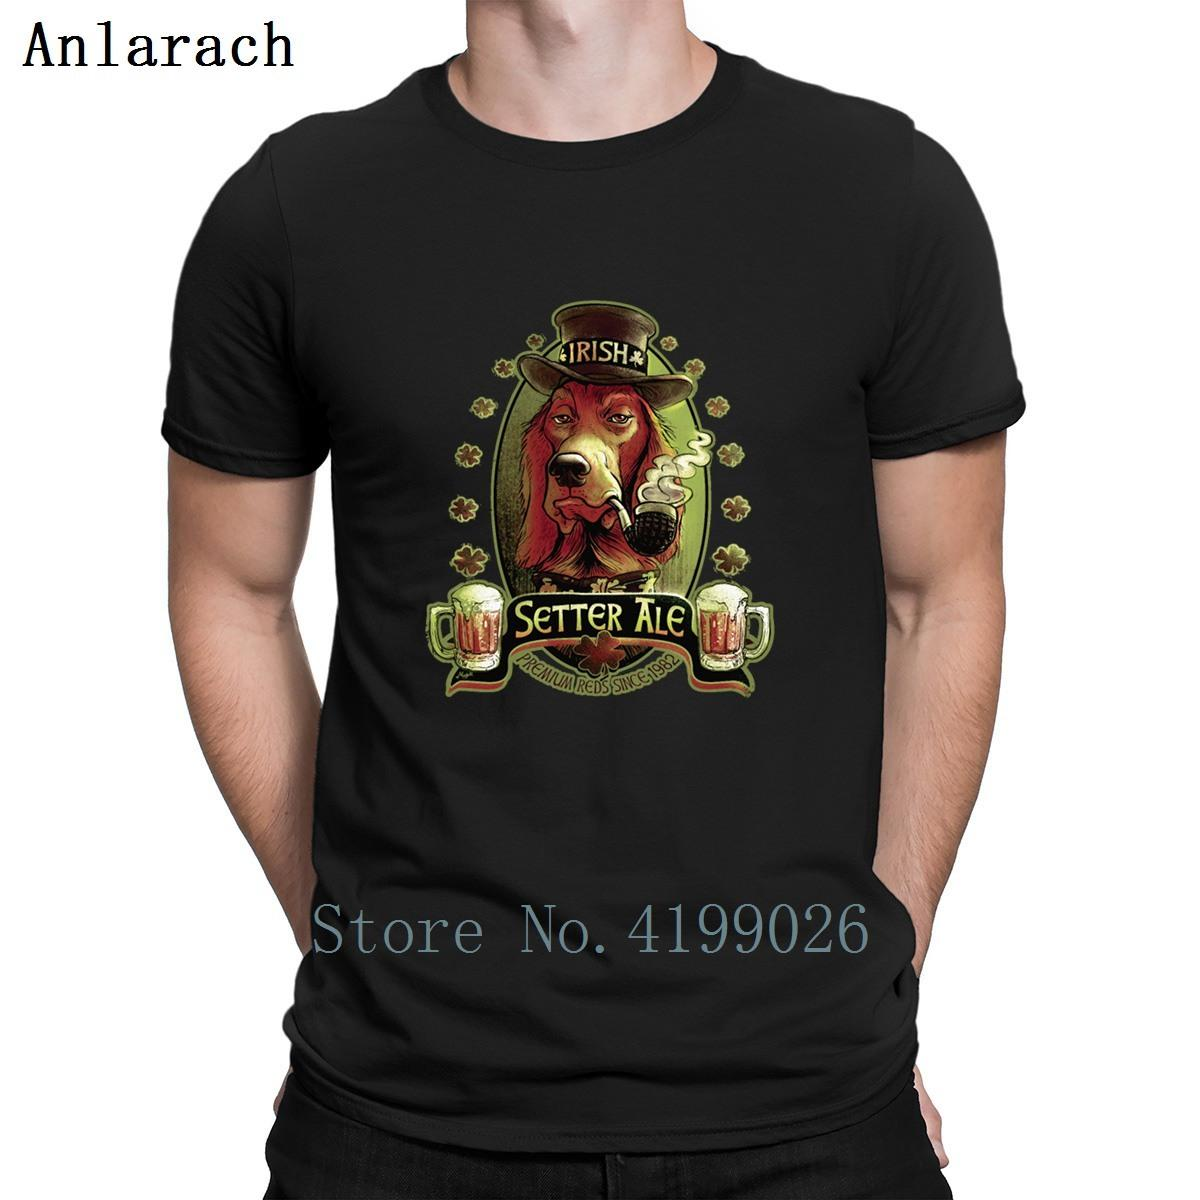 78f0b940 Irish Setter Red Ale Tshirt Hip Hop Designer Sunlight Natural Tshirt For Men  Popular Solid Color Euro Size S 3xl Cute T Shirts Awesome Funny Printed  Shirts ...